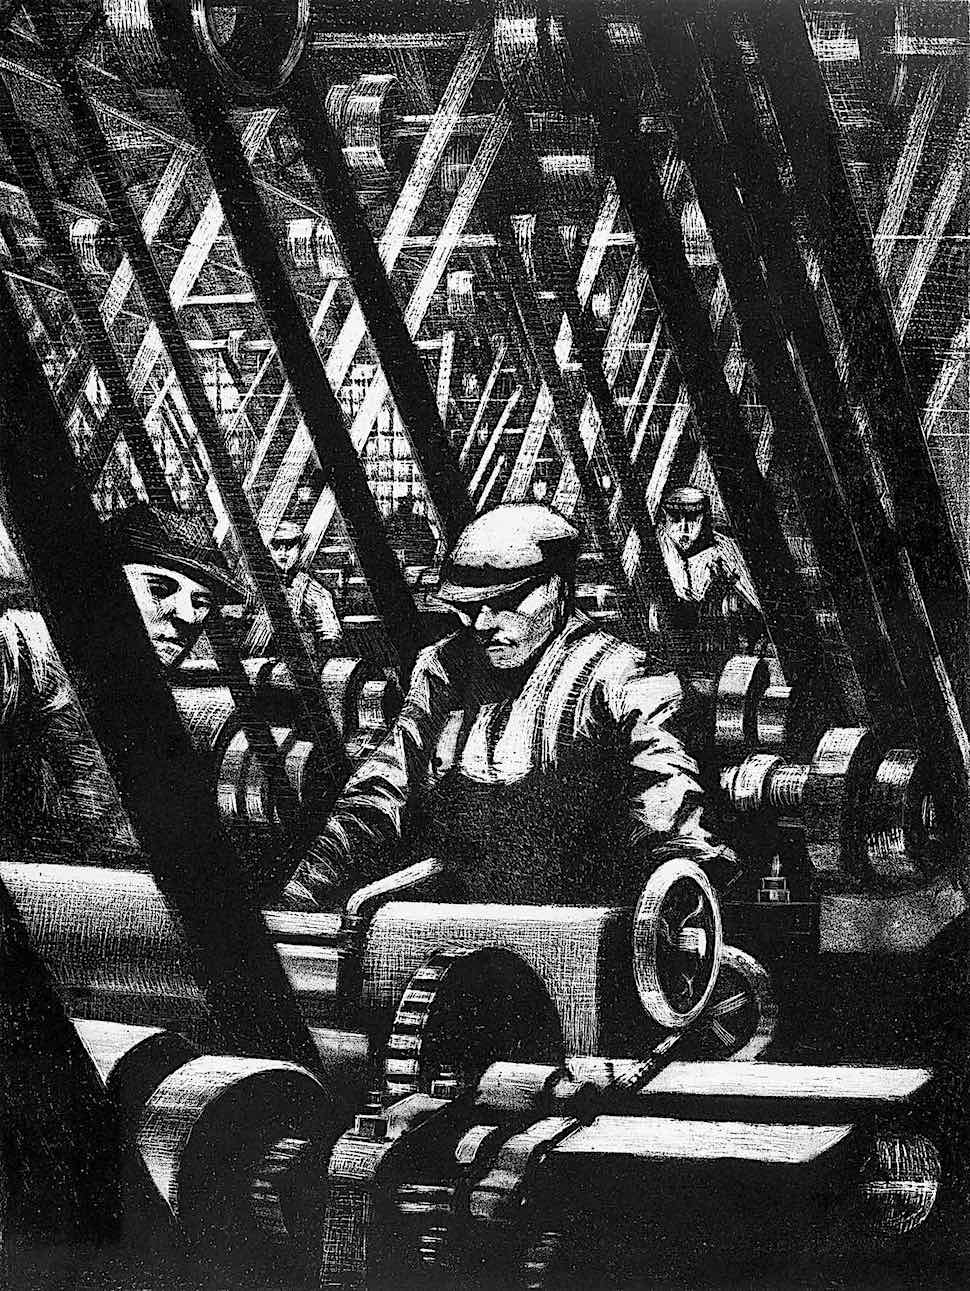 C.R.W. Nevinson art, men working in a factory with many belts